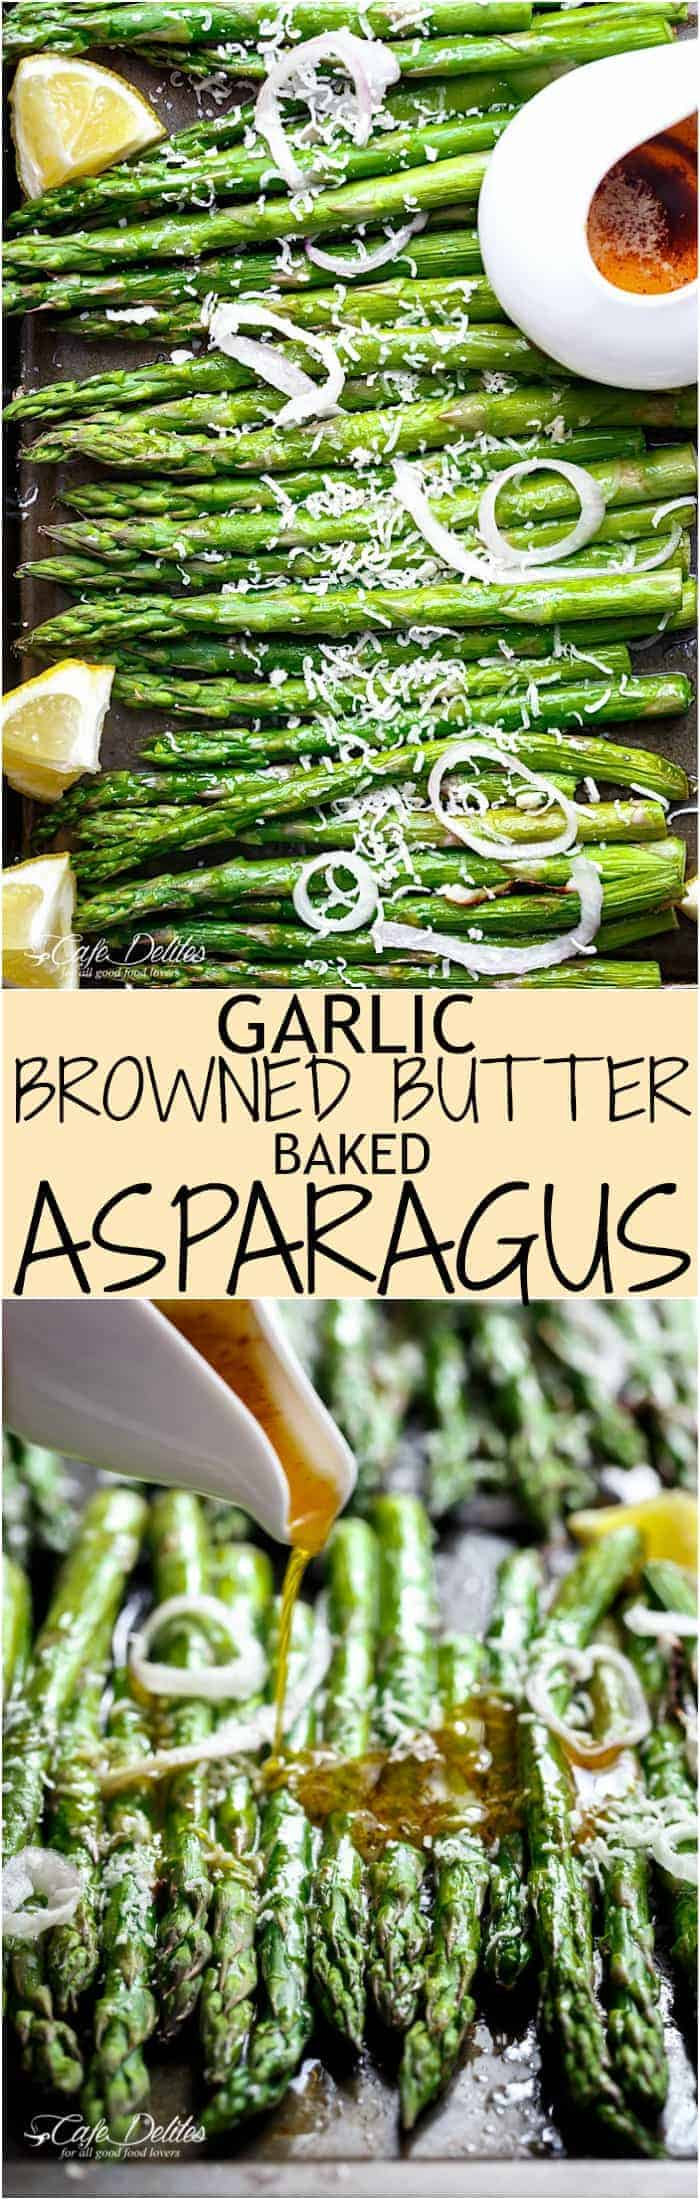 Garlic Browned Butter Baked Asparagus with Parmesan Cheese would have to be the perfect accompaniment or side dish! A delicious way to eat greens! | https://cafedelites.com